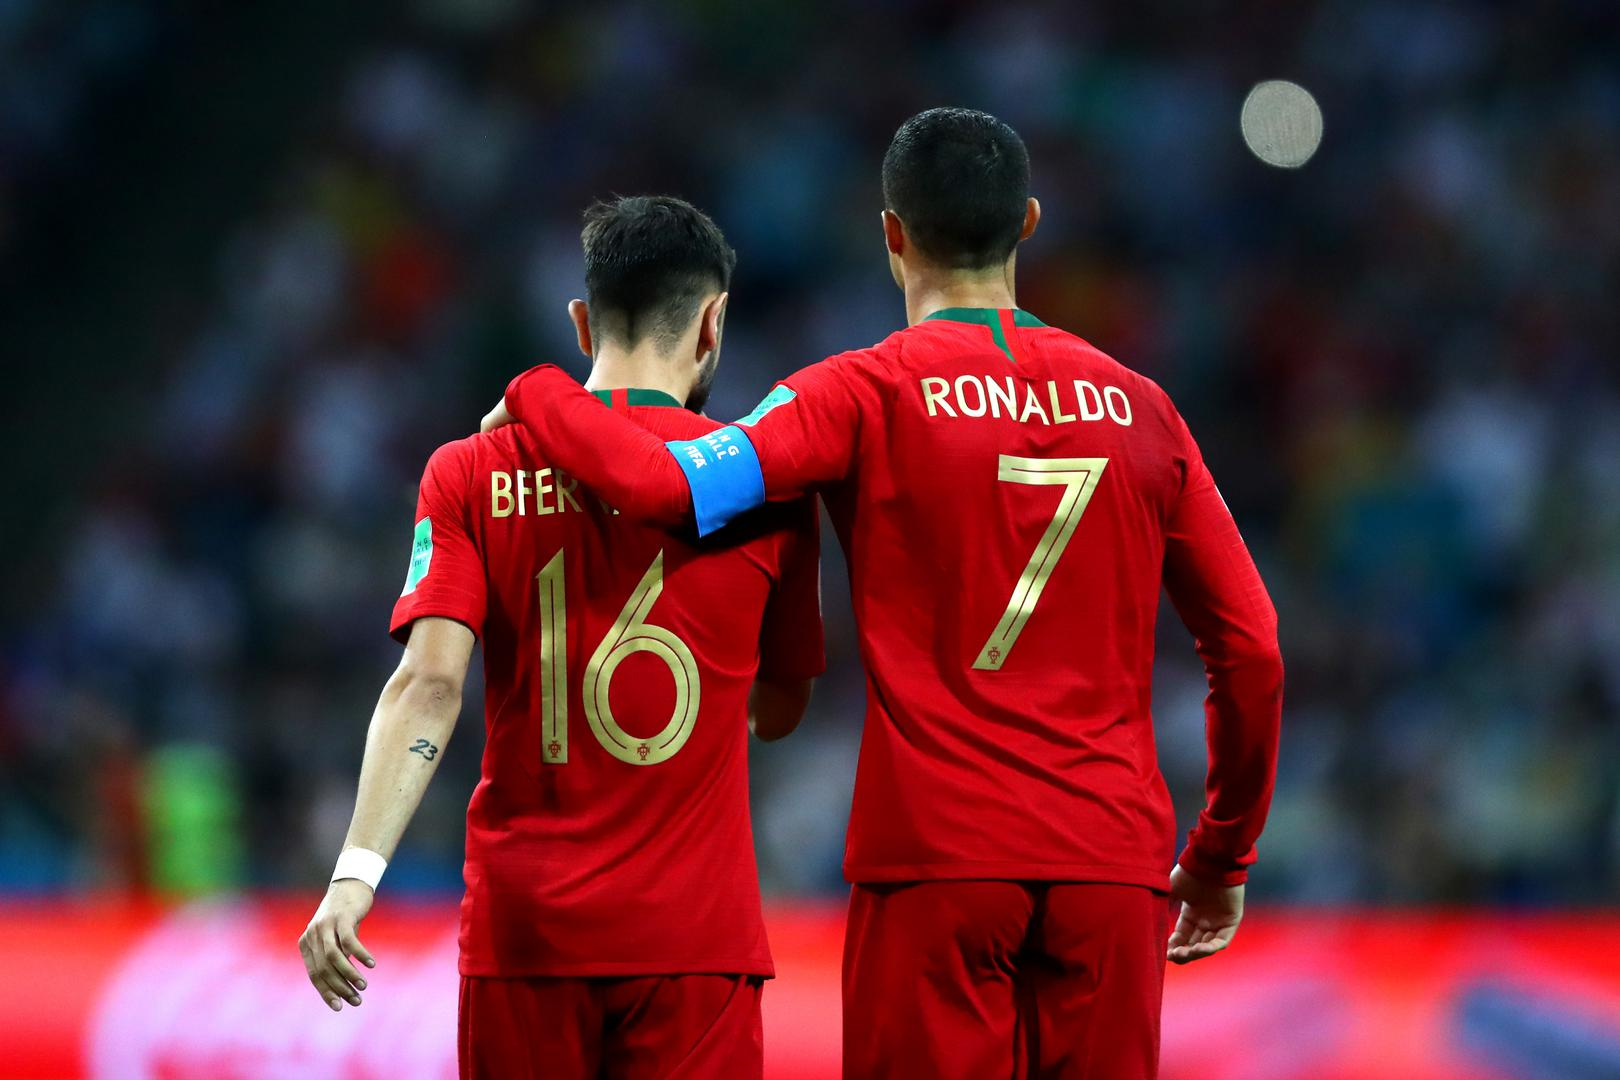 Bruno Fernandes and Cristiano Ronaldo.